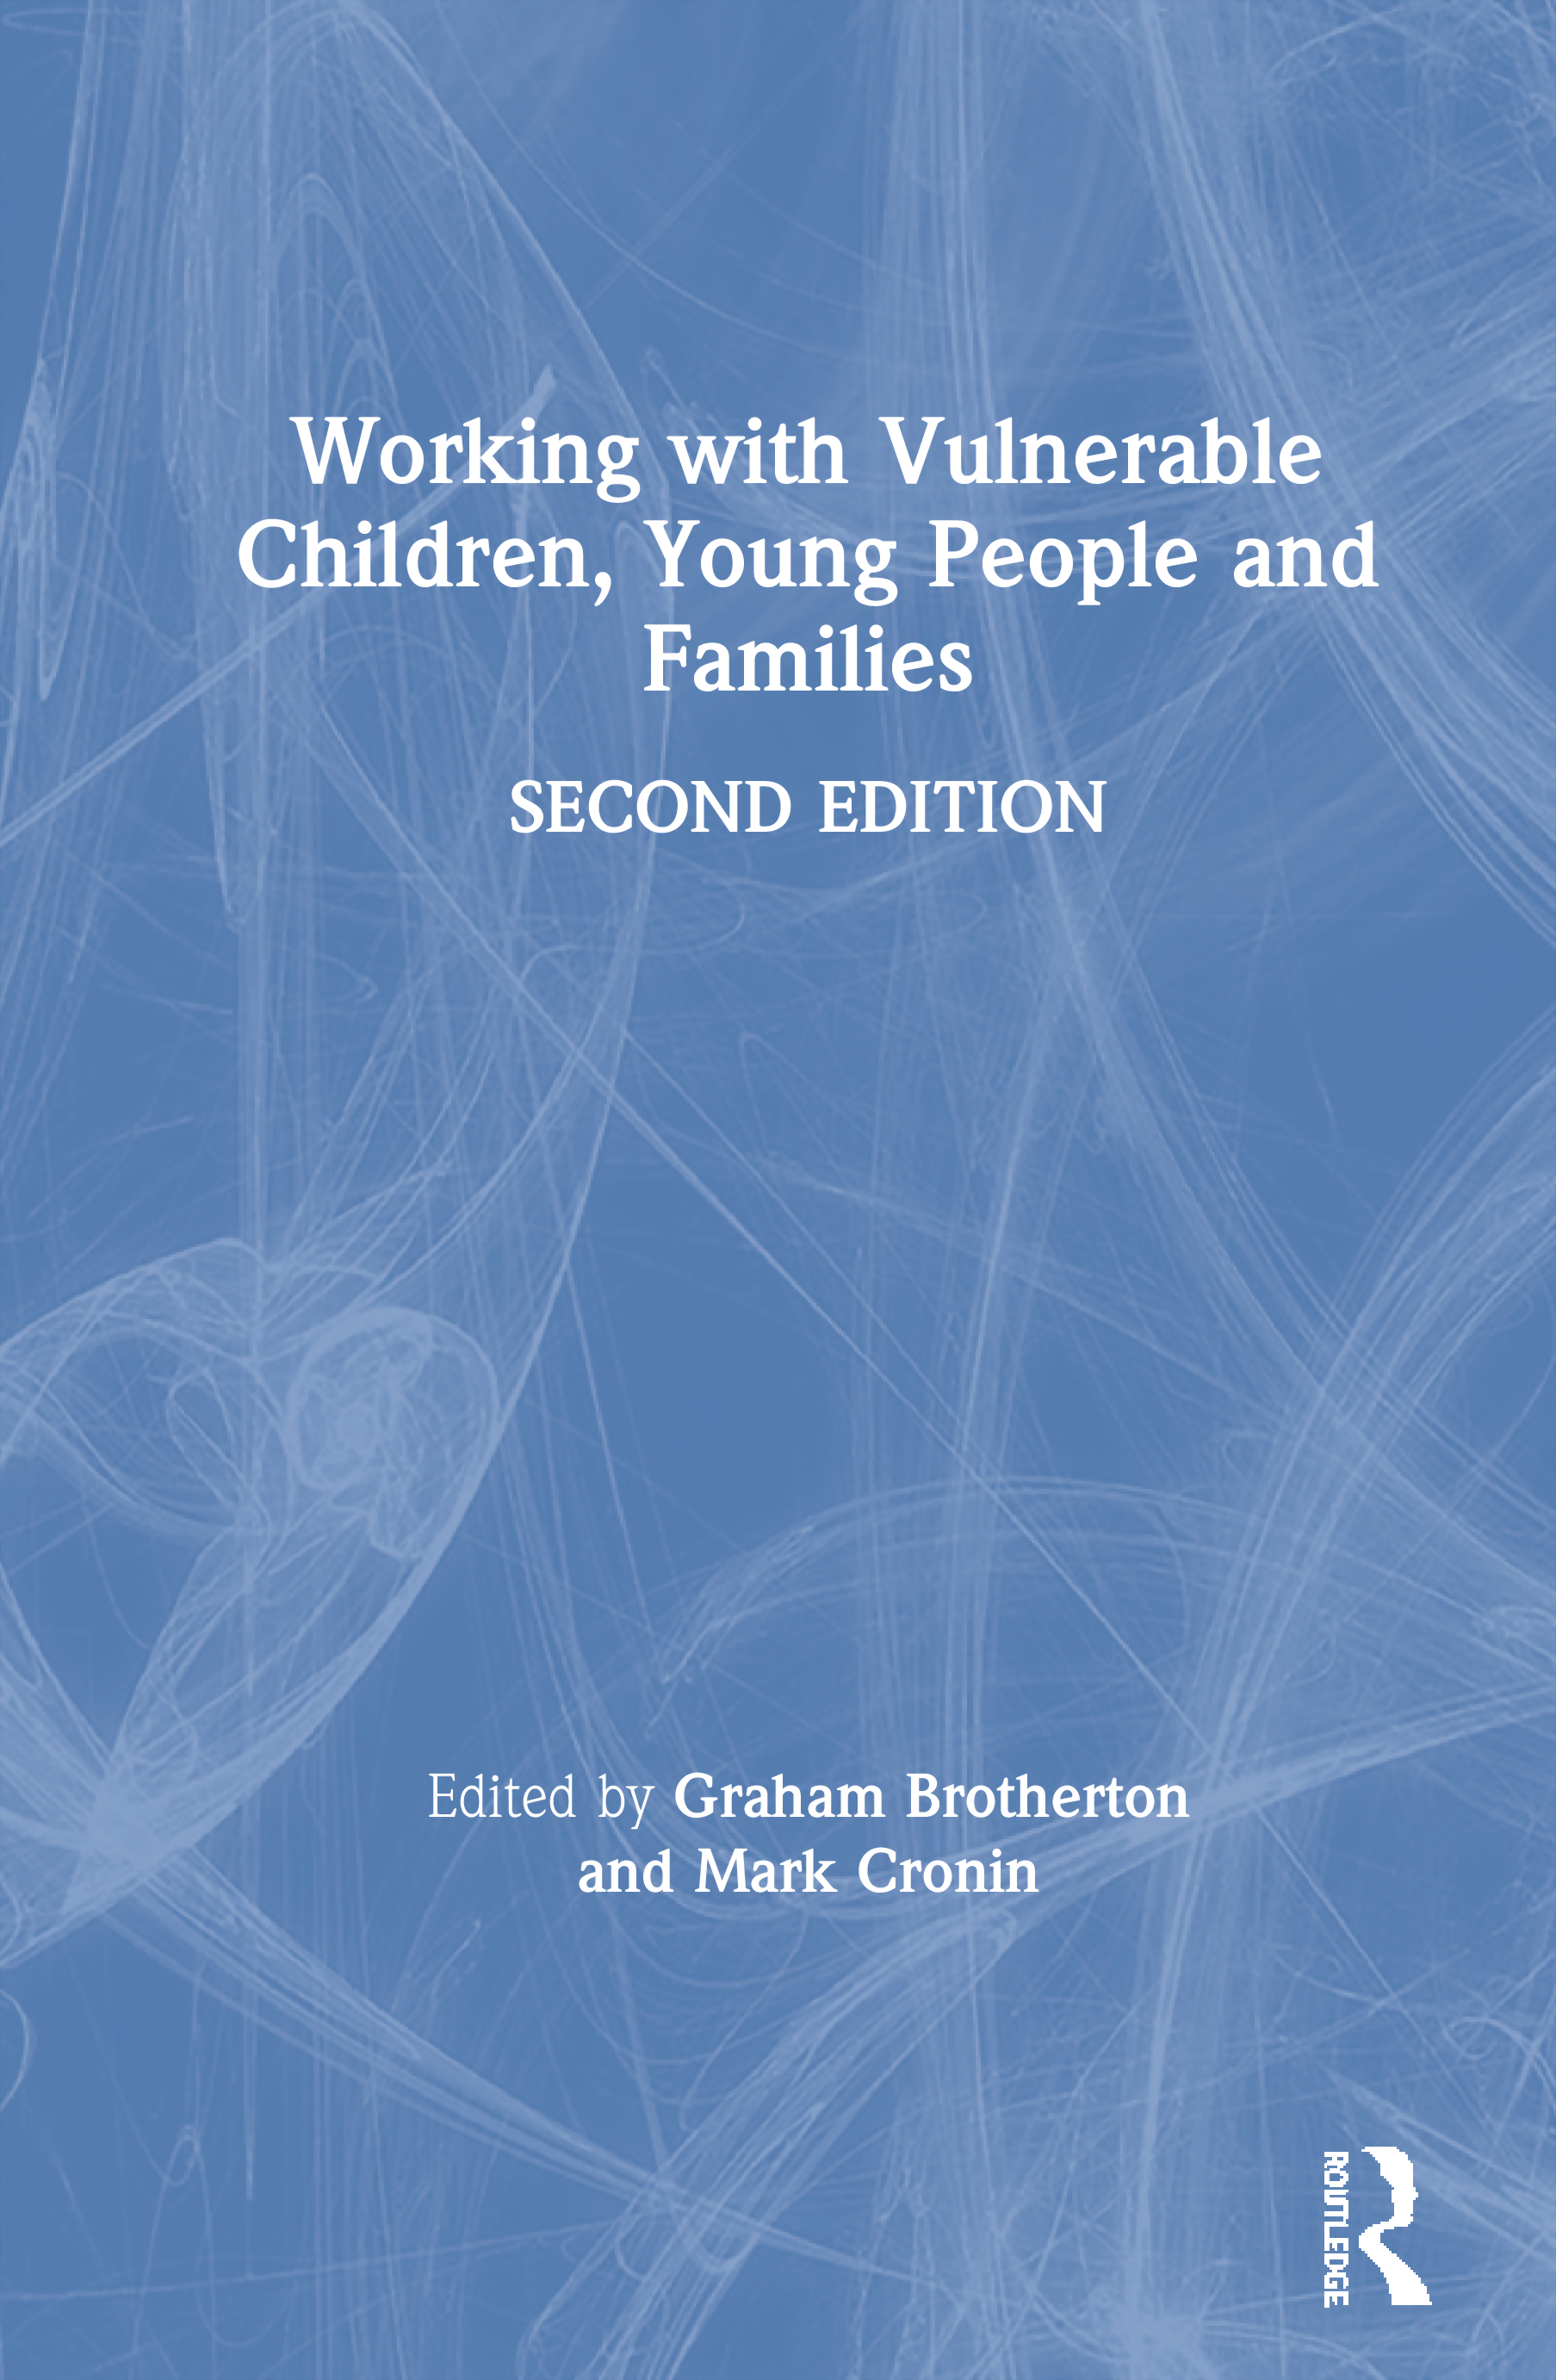 Working with Vulnerable Children, Young People and Families book cover